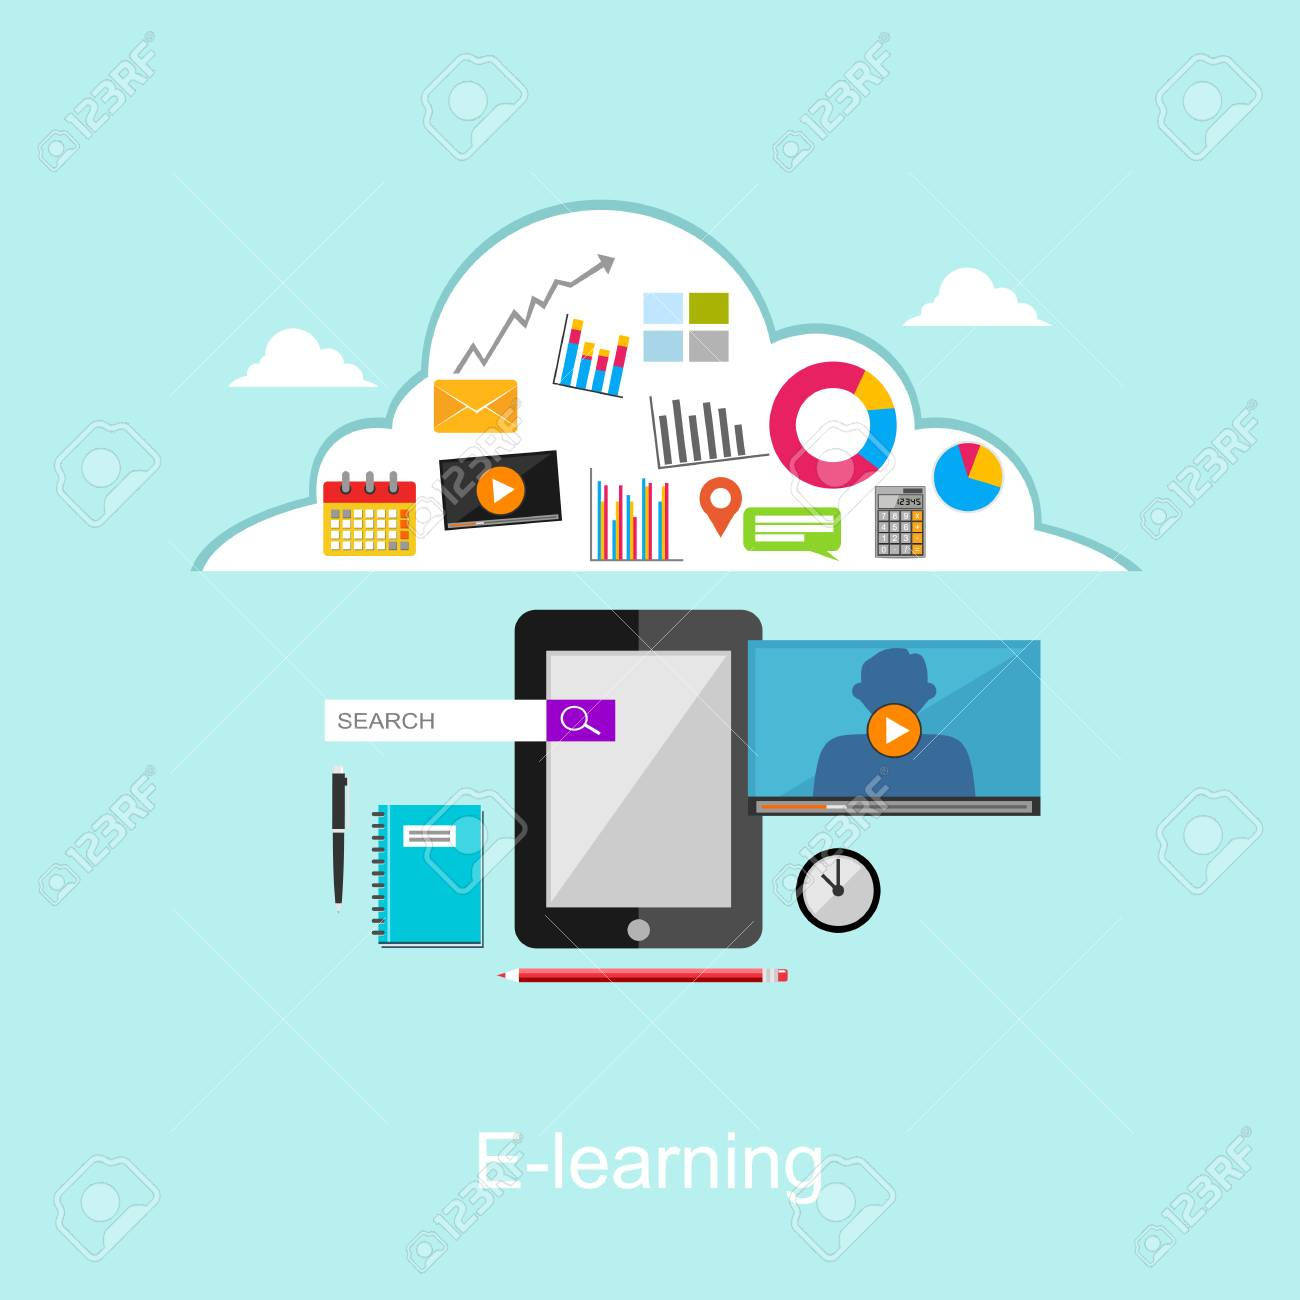 E Learning Flat Design Illustration Concept Royalty Free Cliparts Vectors And Stock Illustration Image 54531089